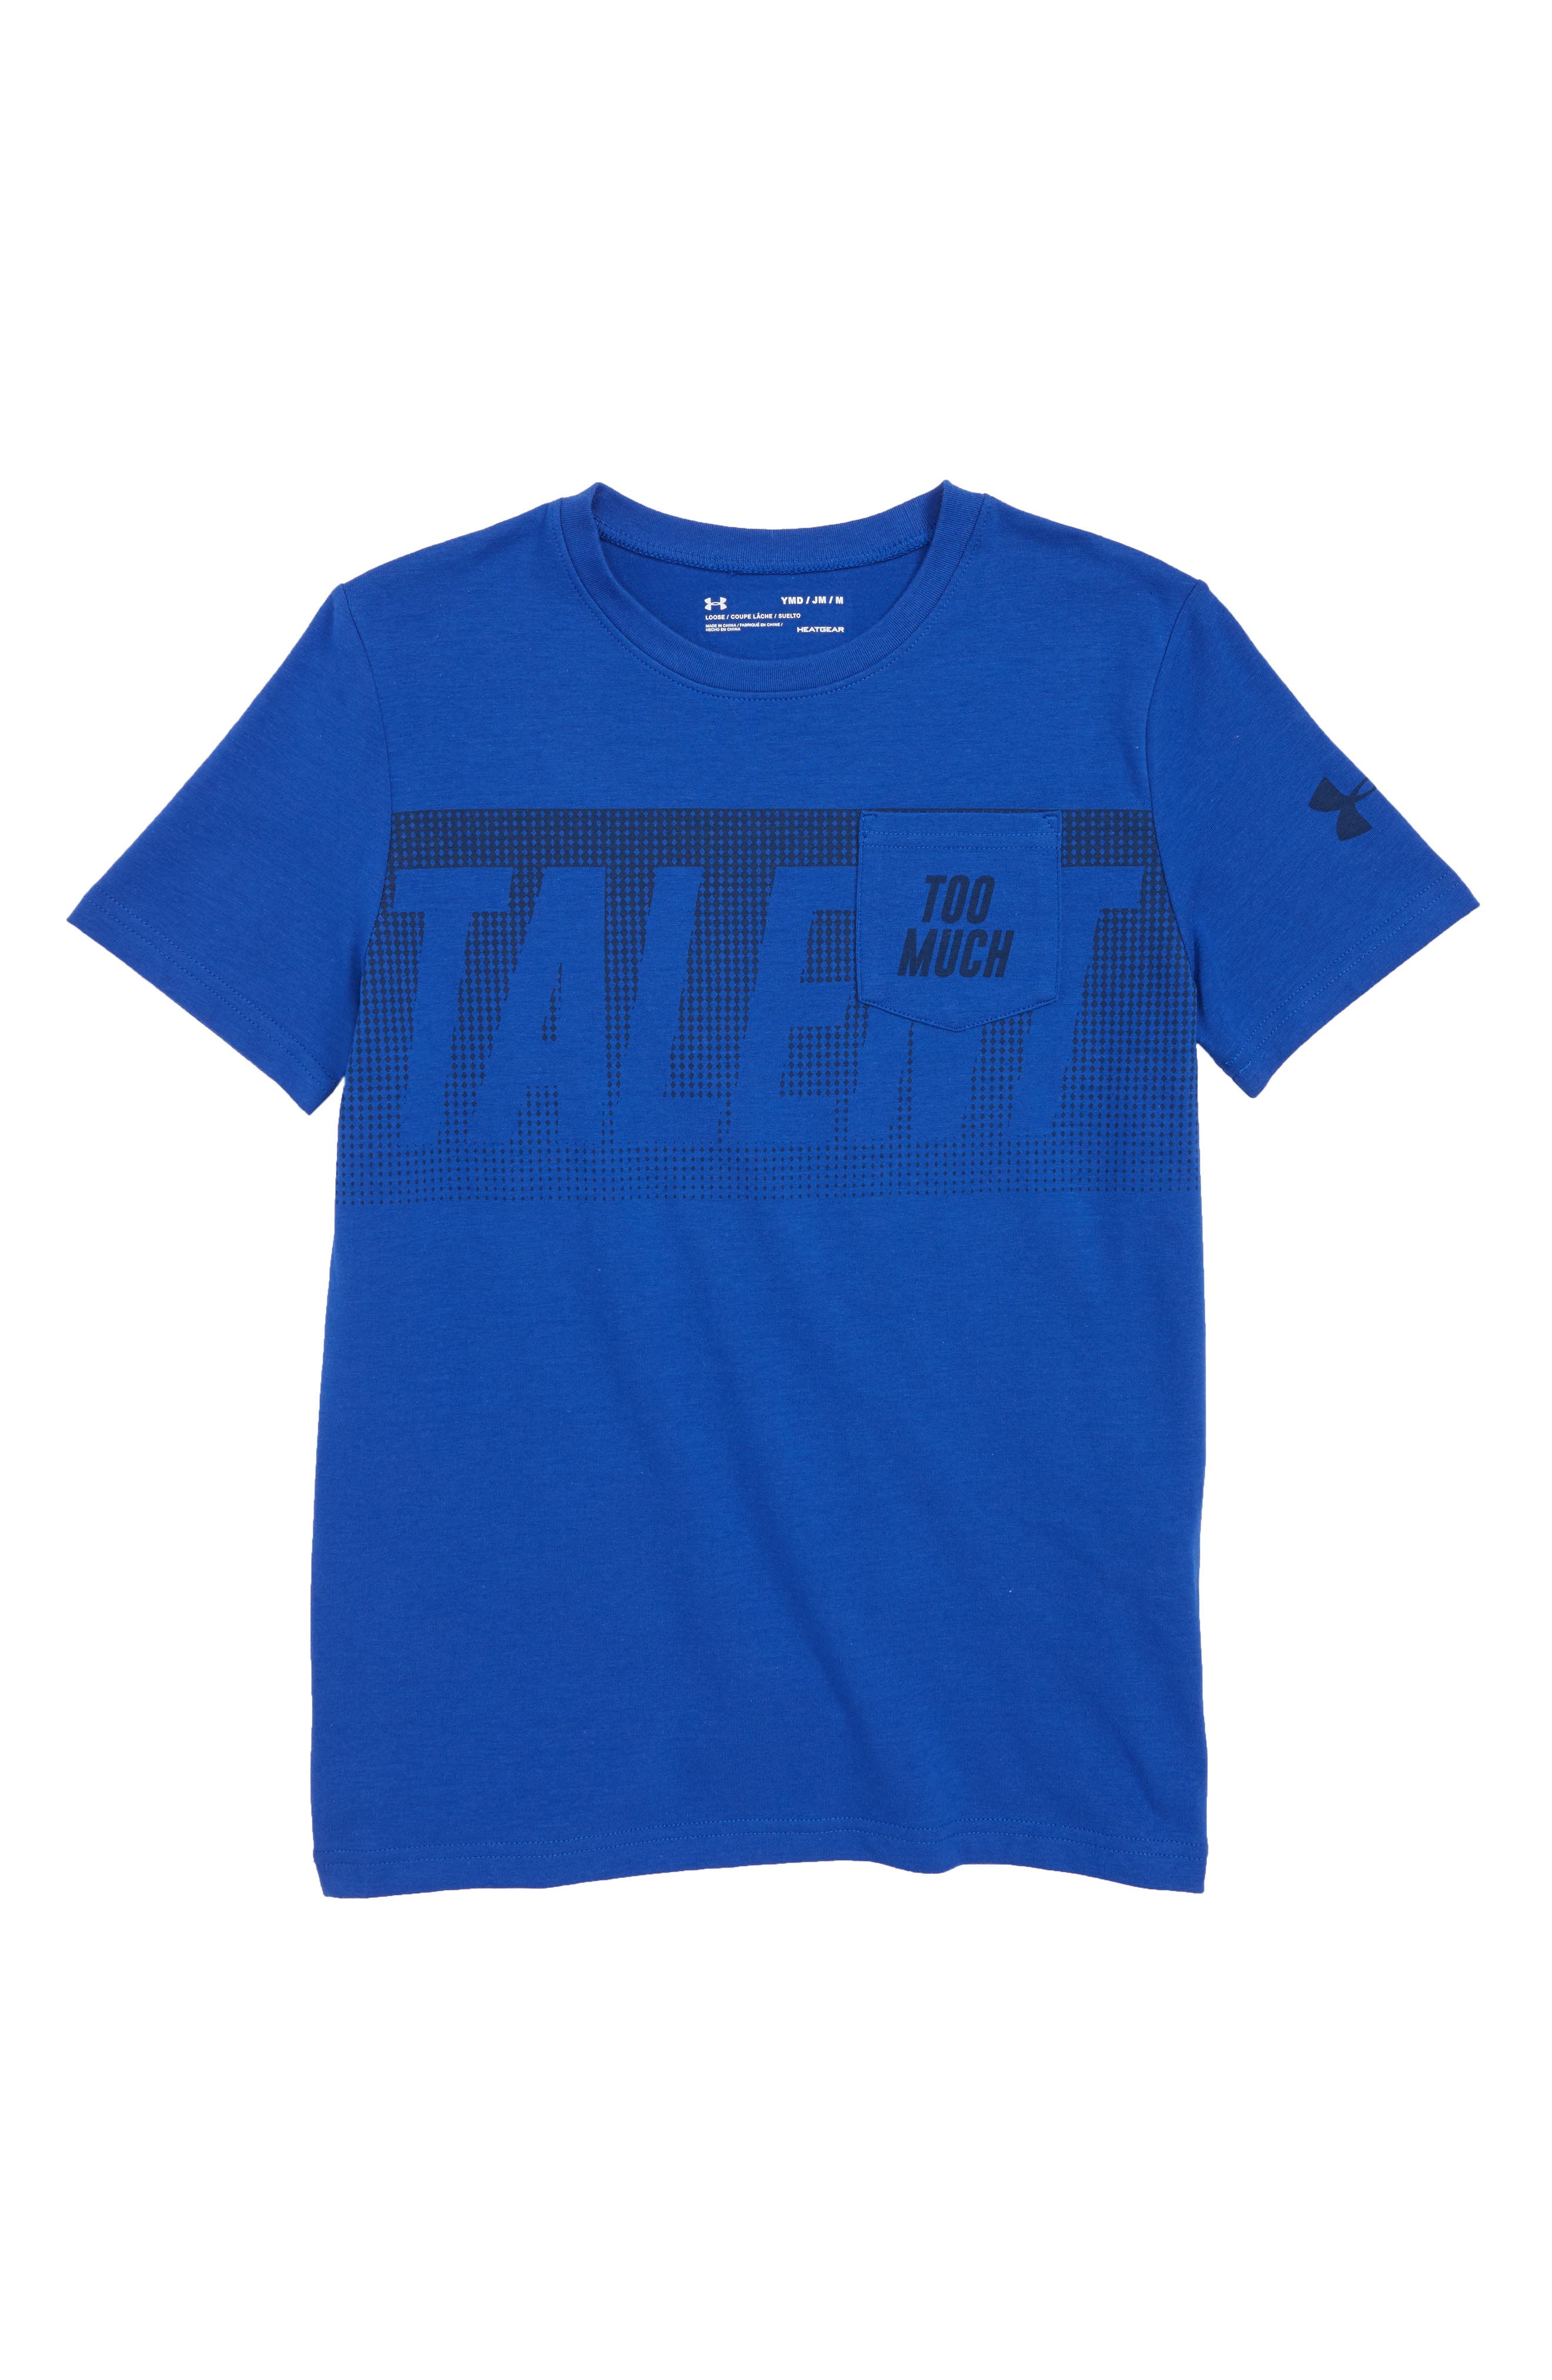 Too Much Talent T-Shirt,                             Main thumbnail 1, color,                             Royal/ Academy